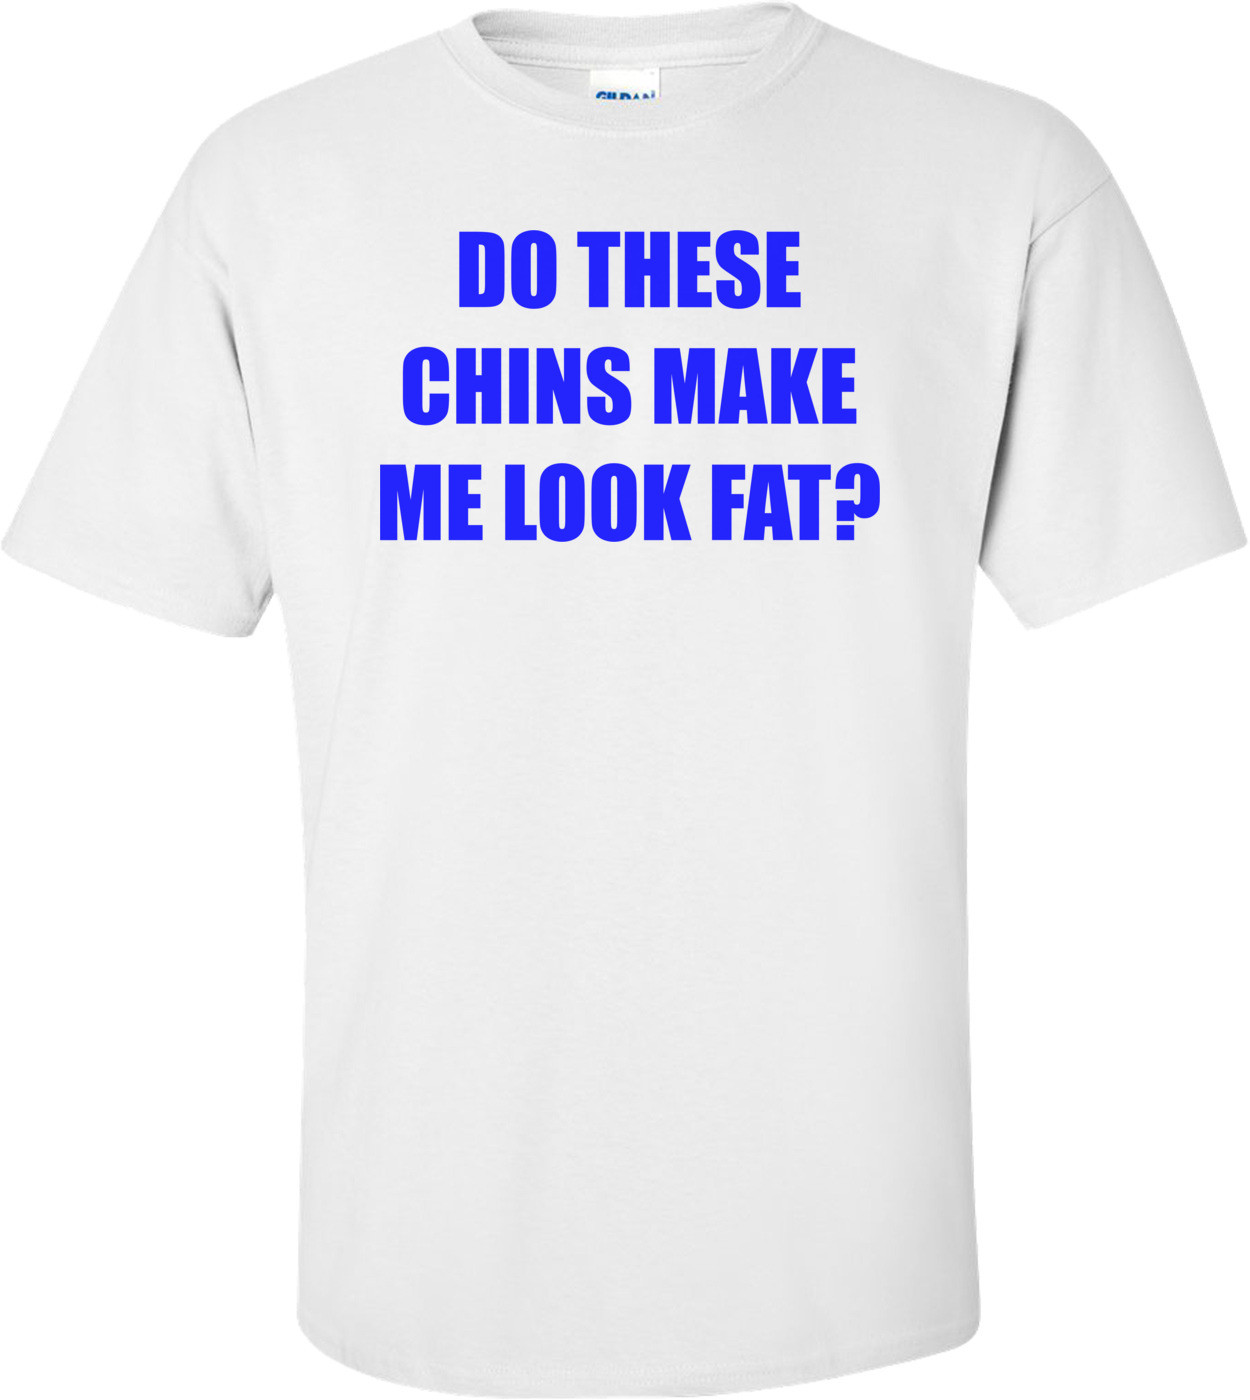 DO THESE CHINS MAKE ME LOOK FAT? Shirt